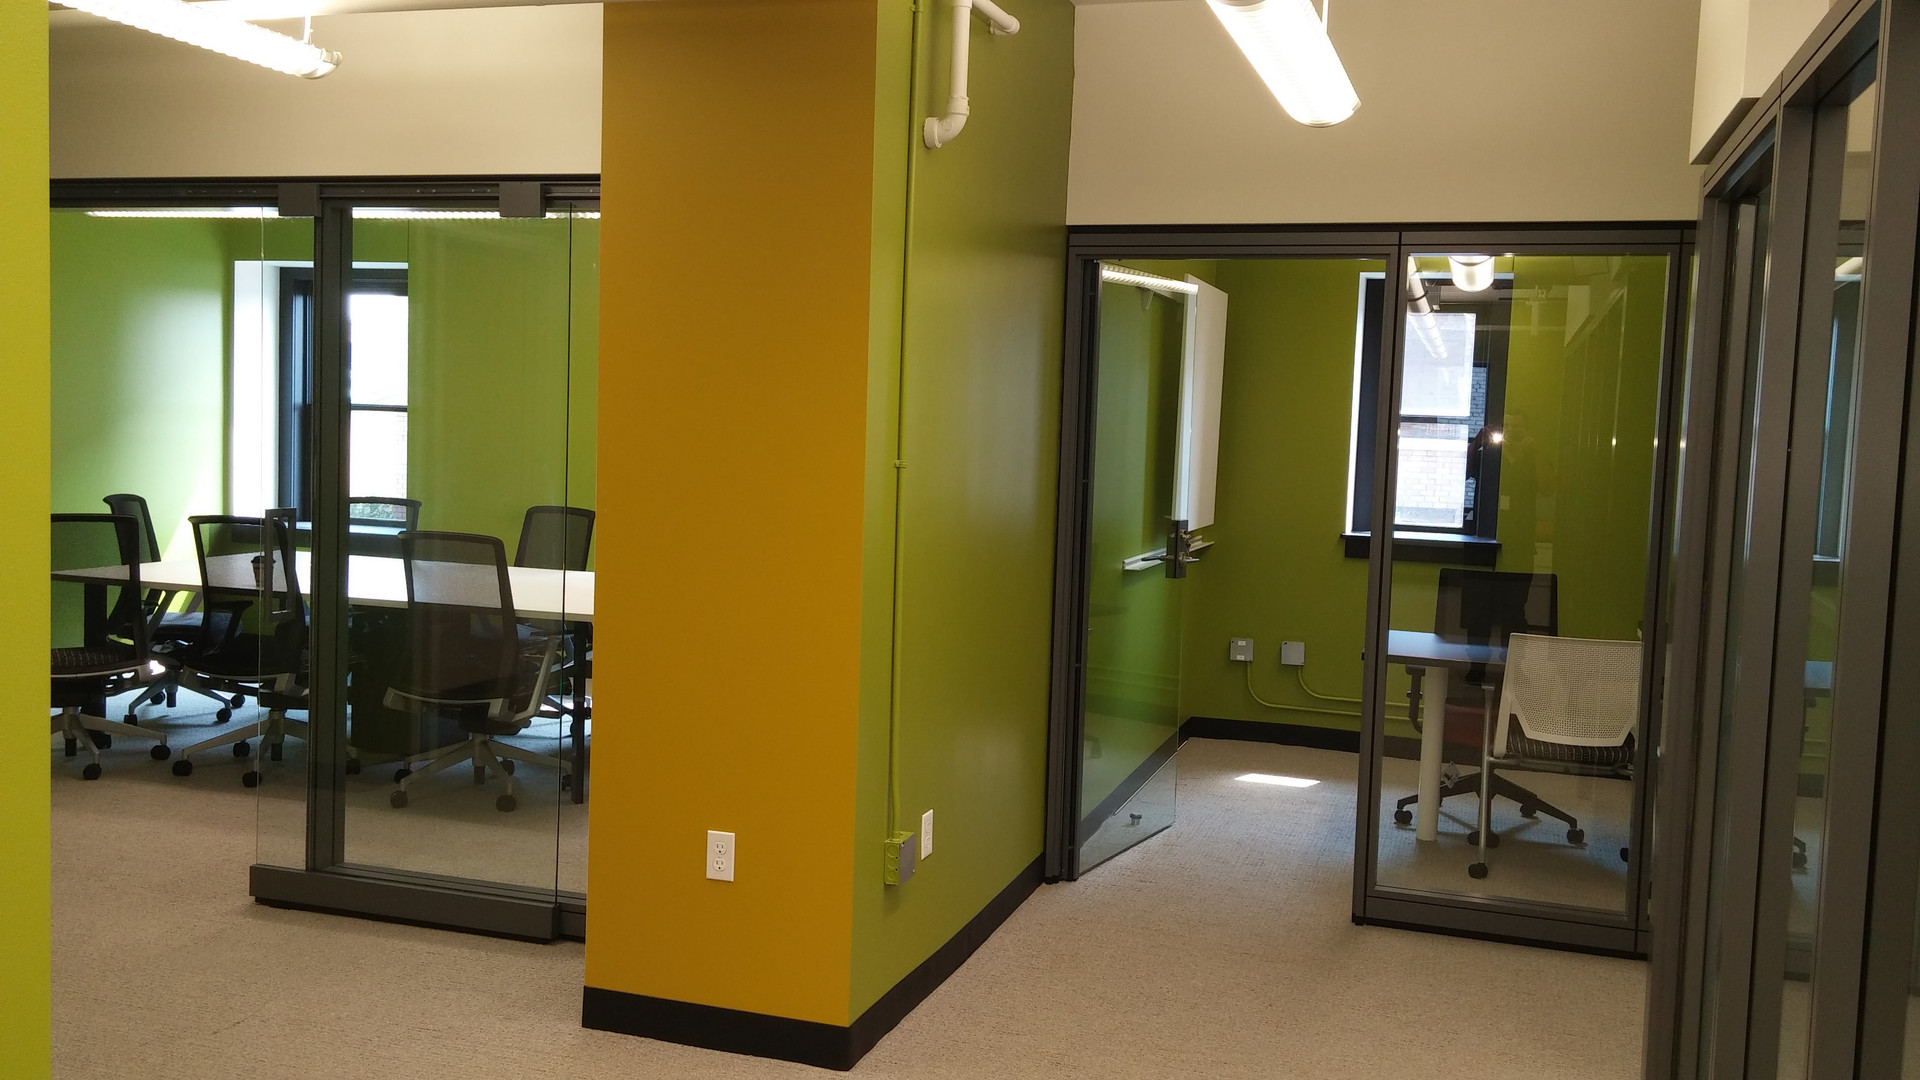 Insterior office space renovation for Rockford Construction.